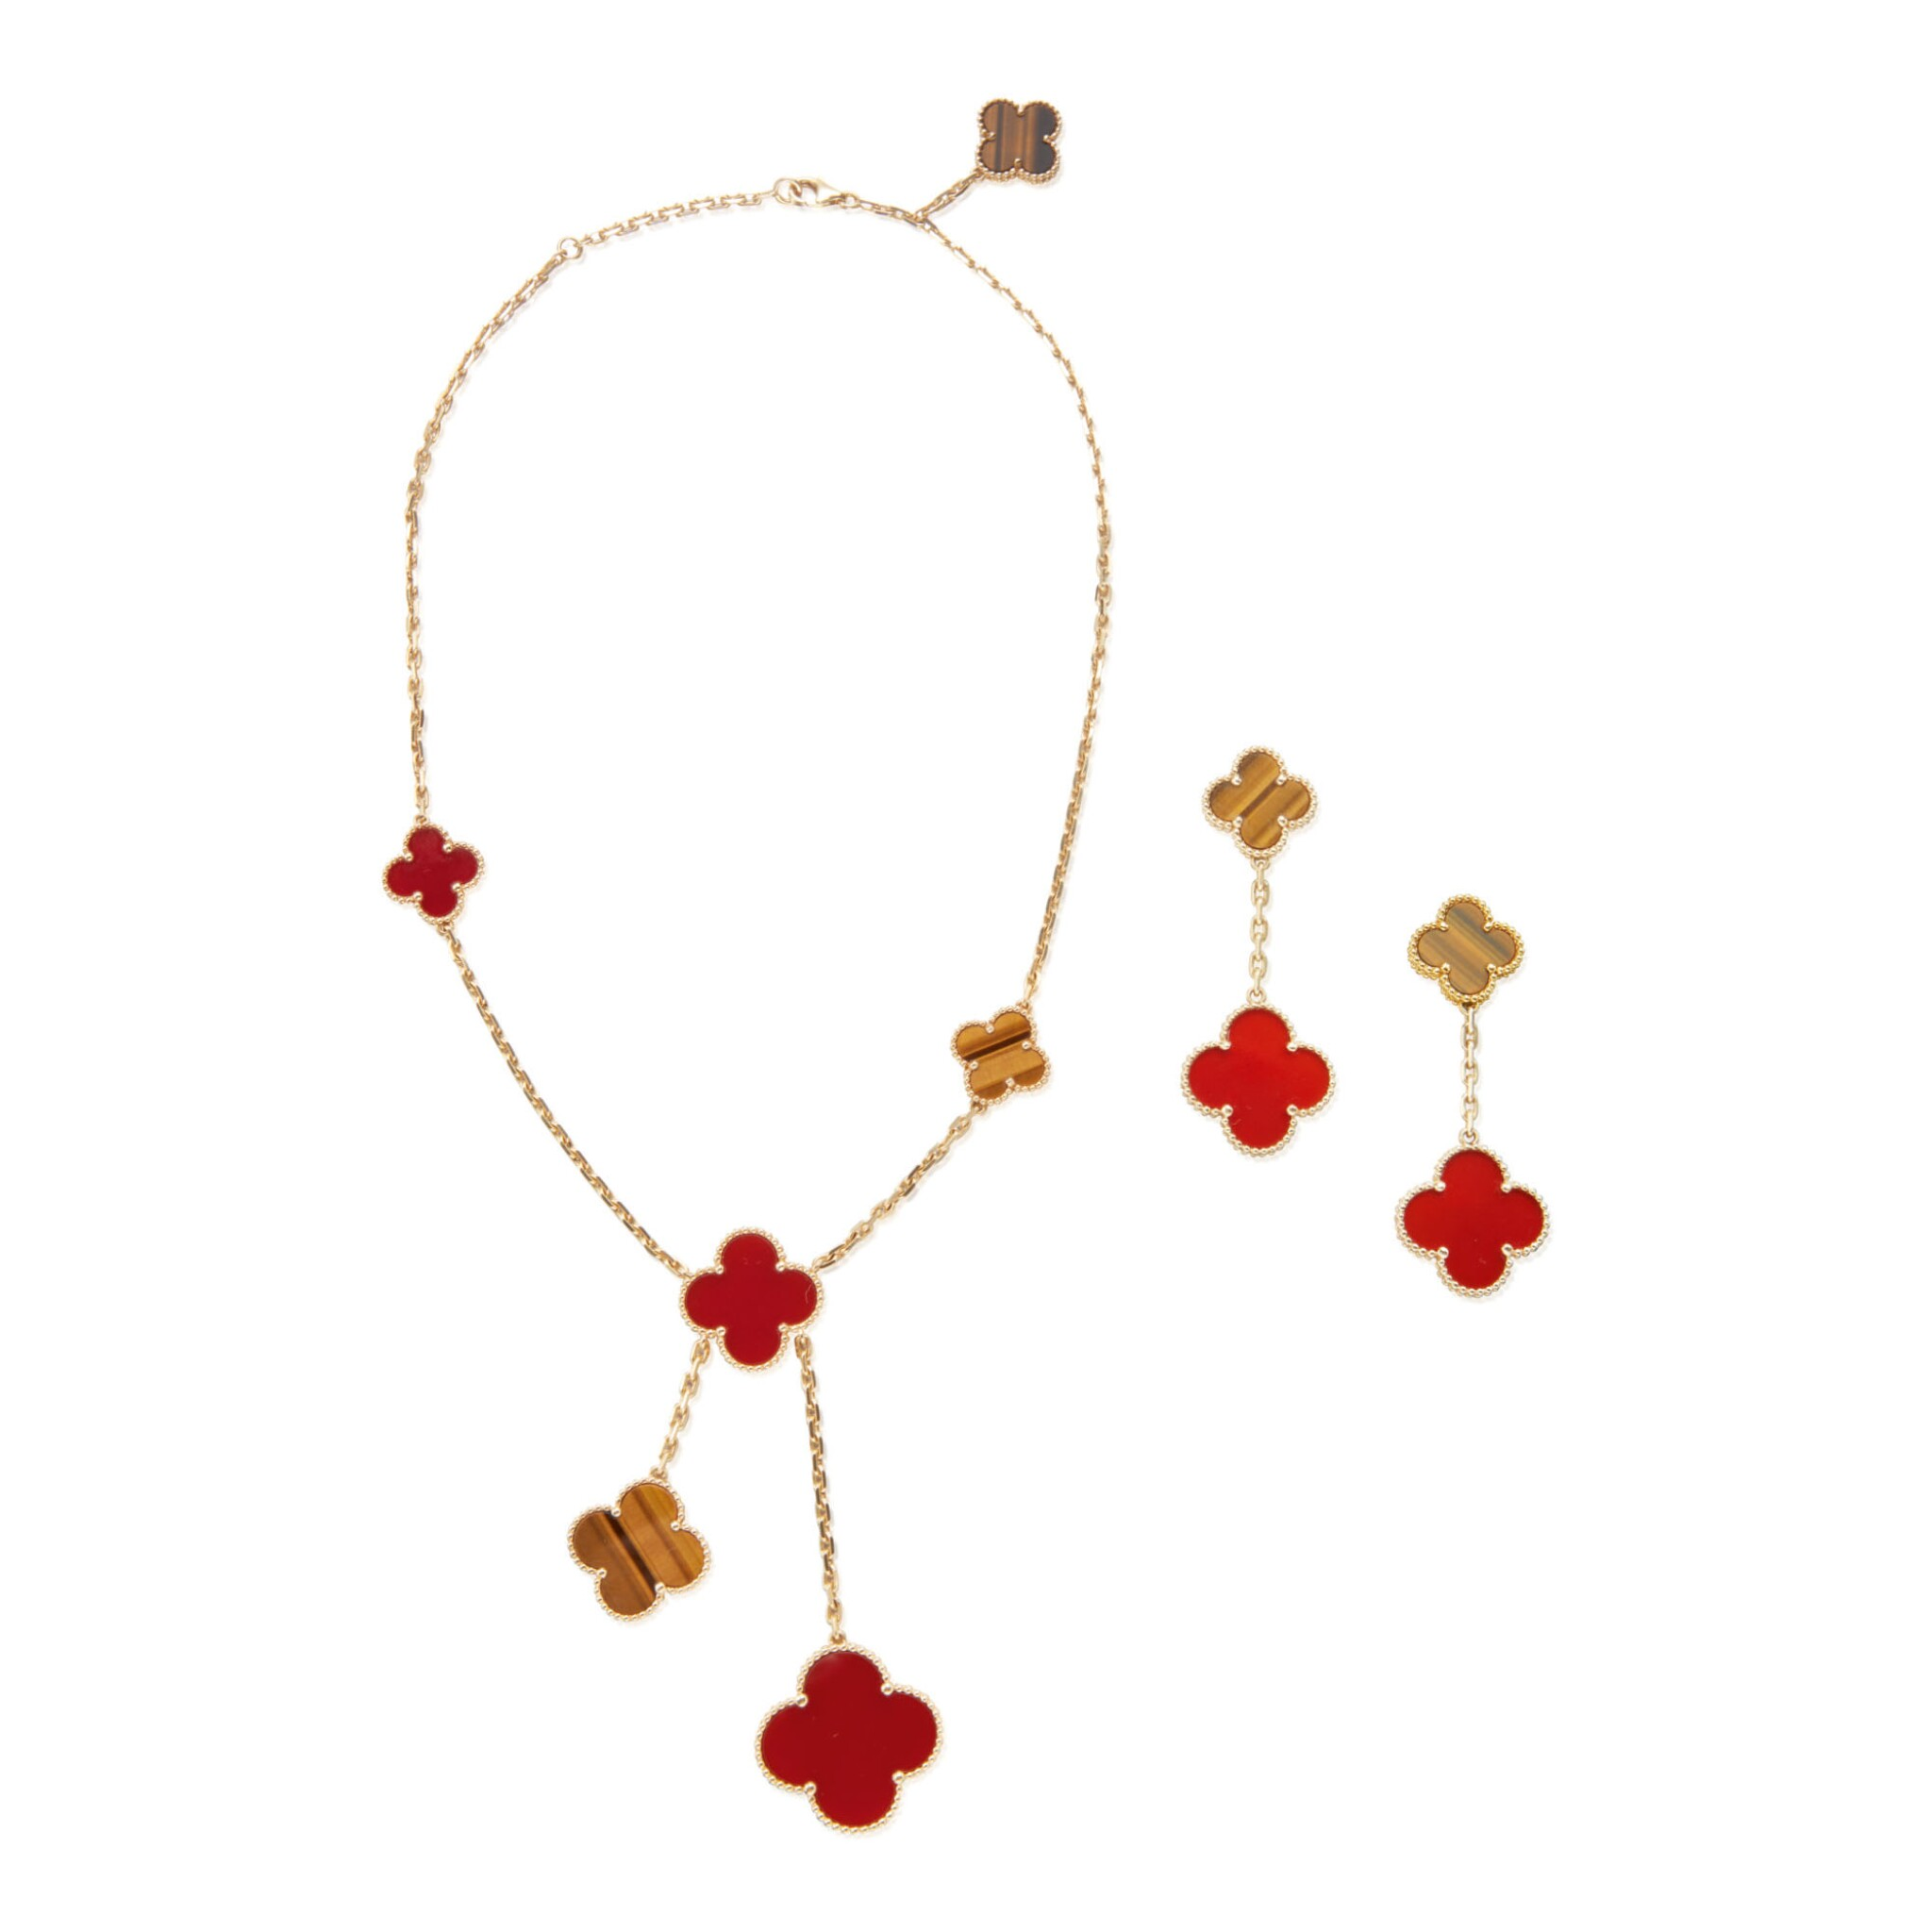 CARNELIAN AND TIGER'S EYE 'MAGIC ALHAMBRA' NECKLACE AND PAIR OF EARCLIPS, VAN CLEEF & ARPELS, FRANCE